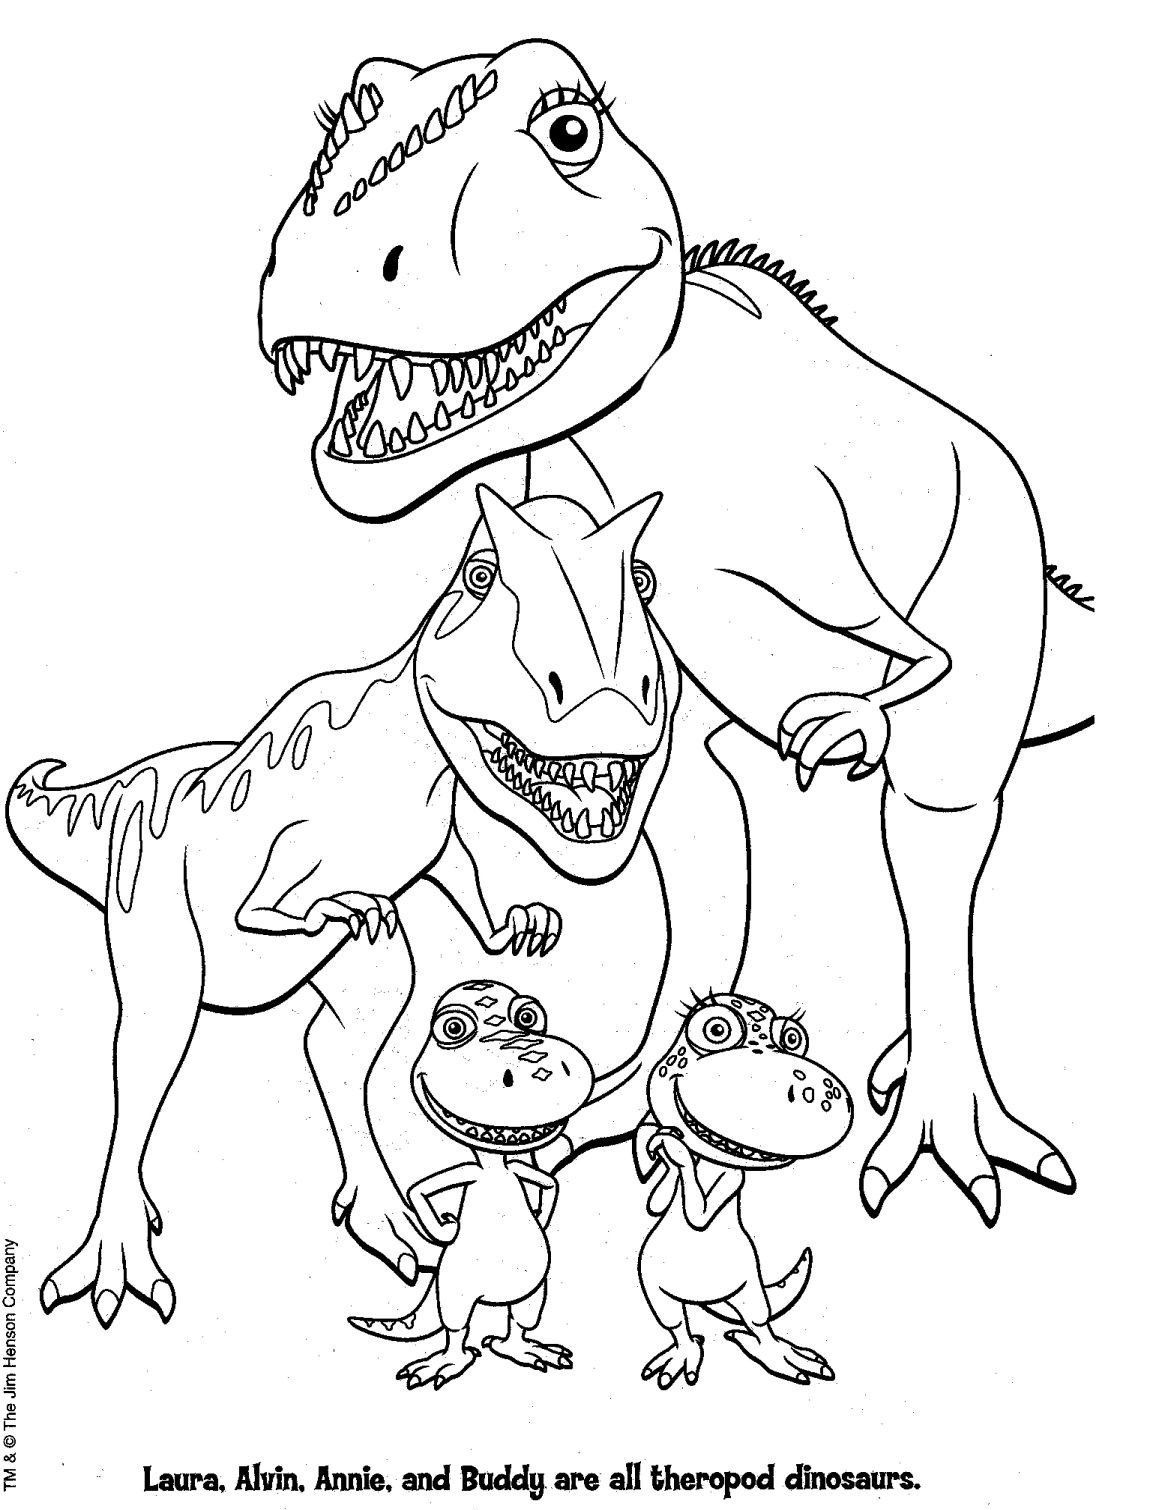 dinasour coloring pages coloring pages dinosaur free printable coloring pages coloring dinasour pages 1 1